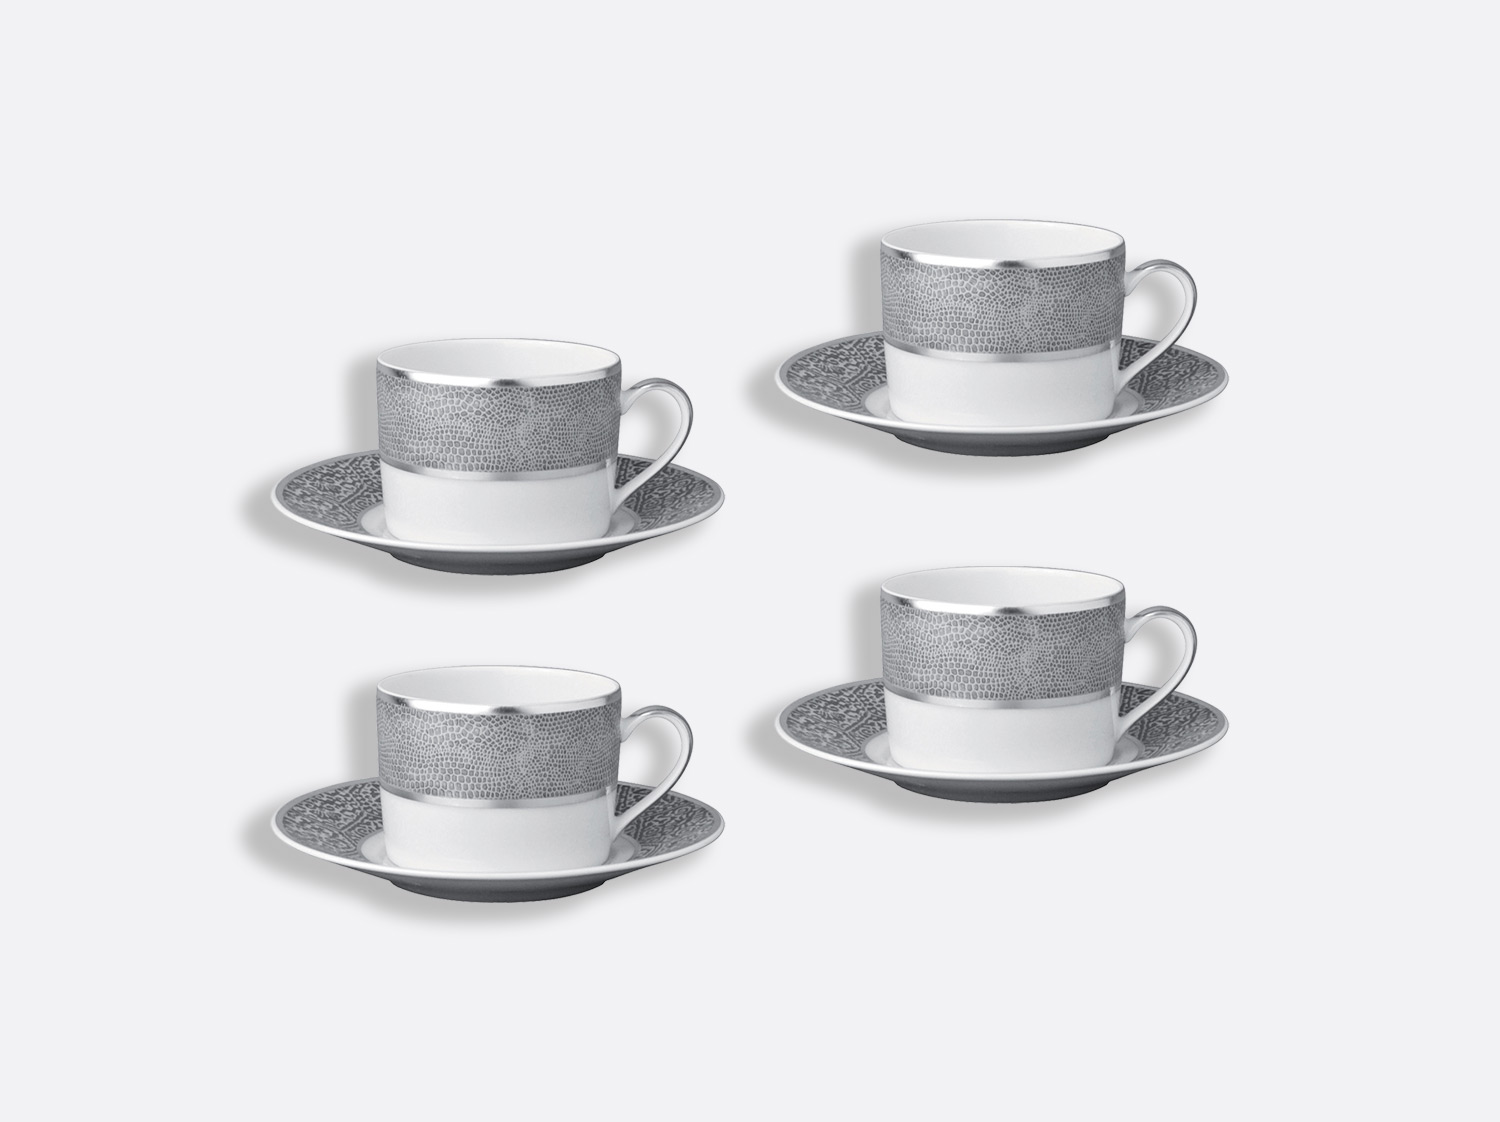 China Tea cup and saucer gift box - 20 cl - Set of 4 of the collection Sauvage | Bernardaud